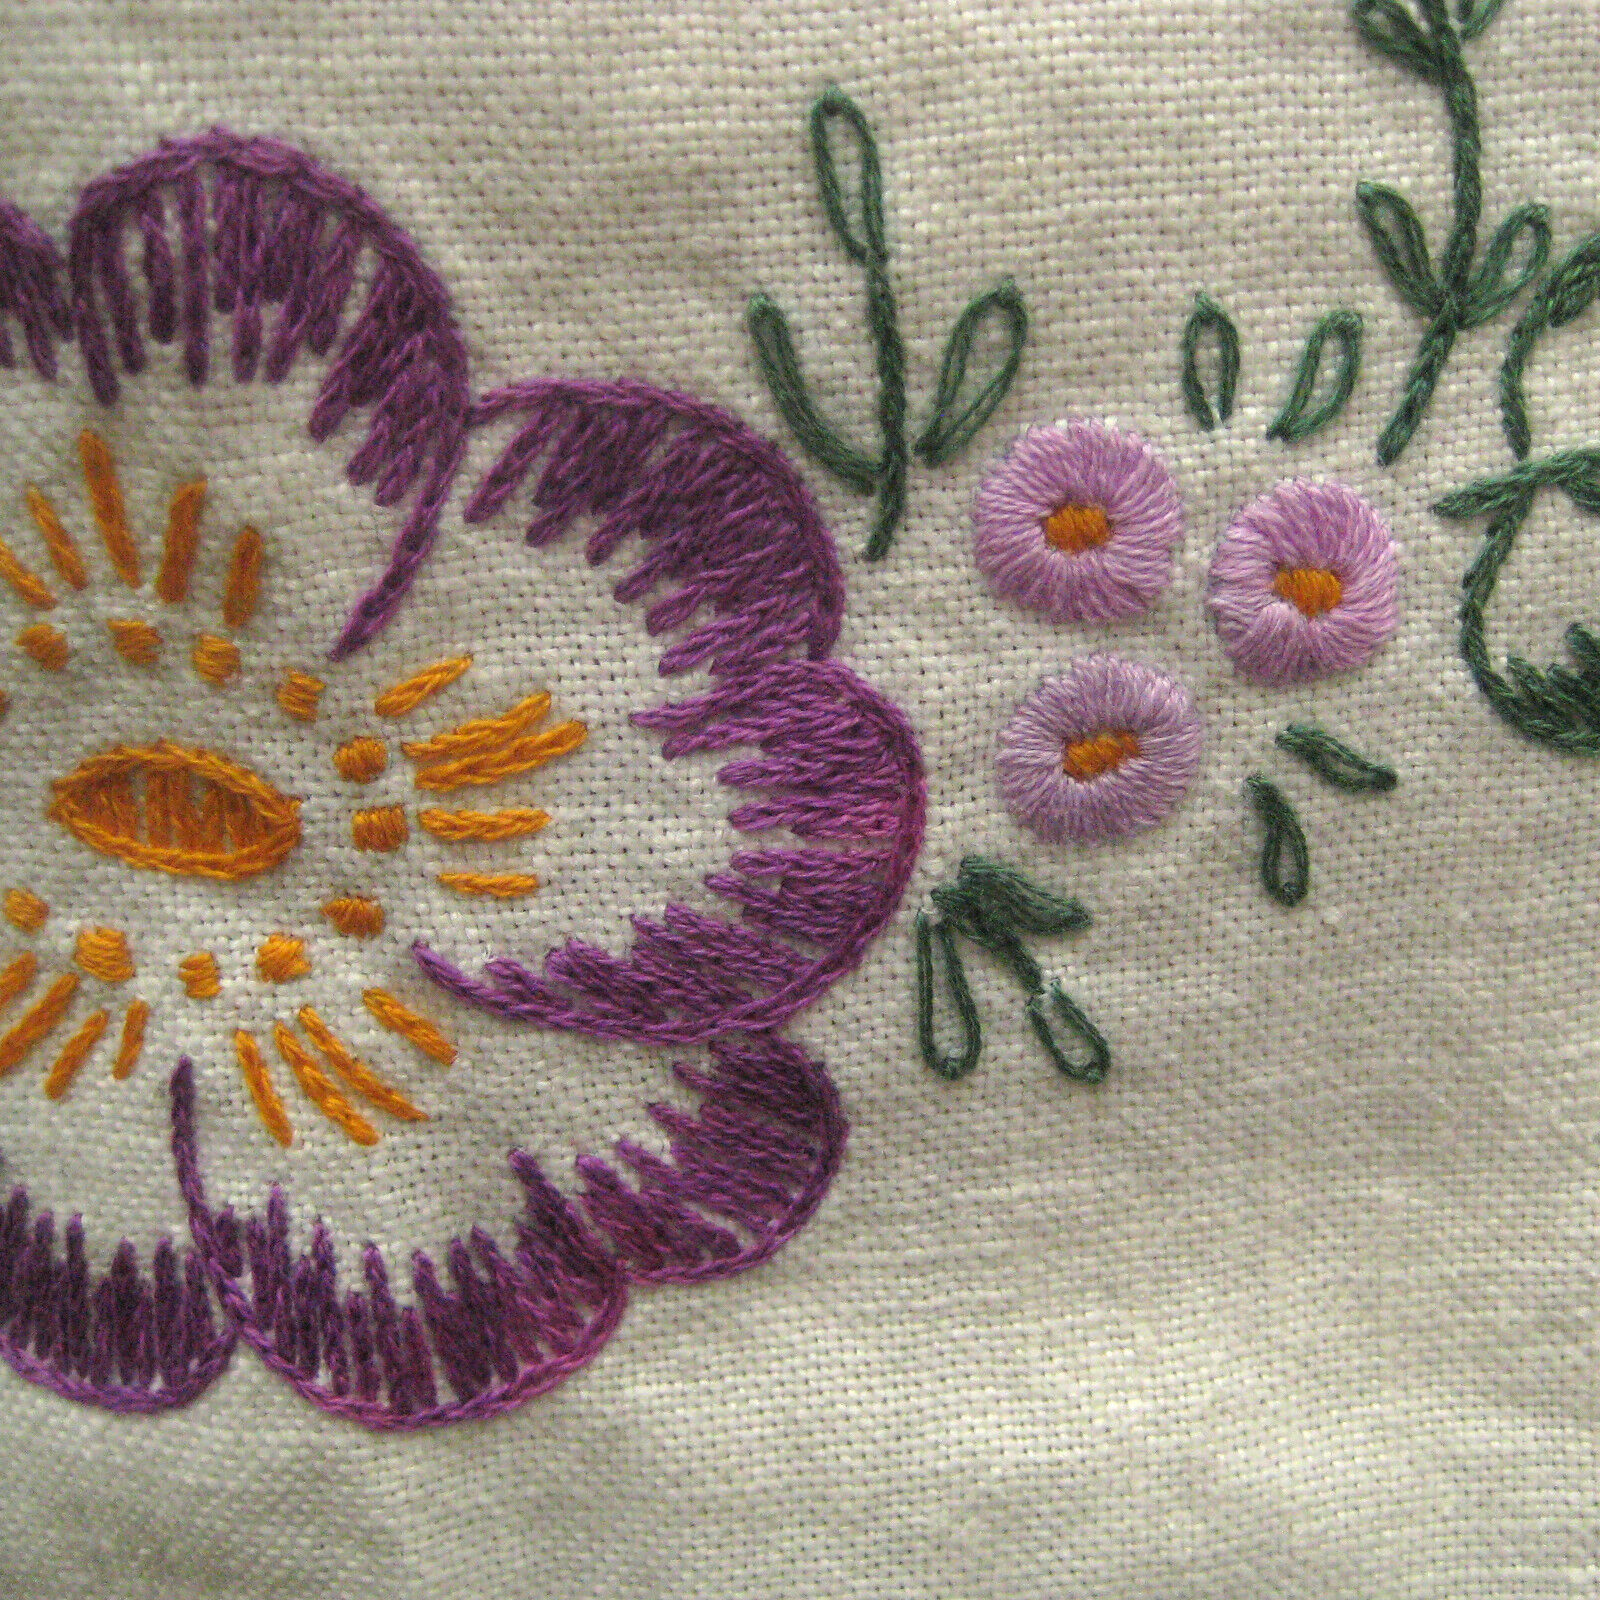 Tea Towel 38 In Kitchen Bathroom Crewel Embroidery Hand Stitch Floral Butterfly